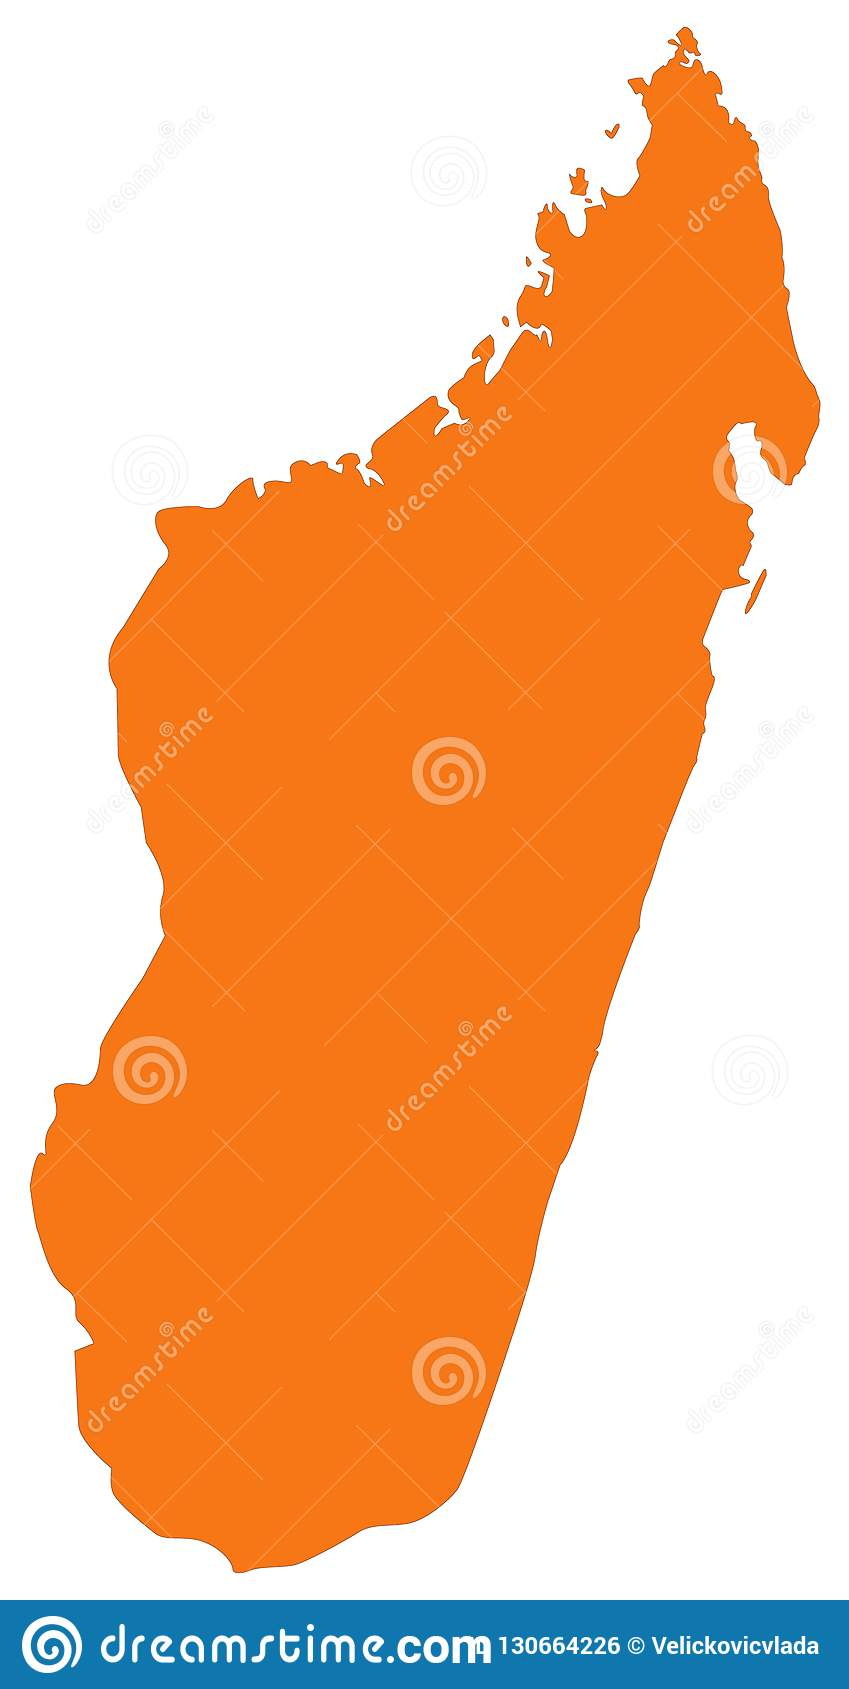 Madagascar Map - Island Country In The Indian Ocean Stock Vector ...